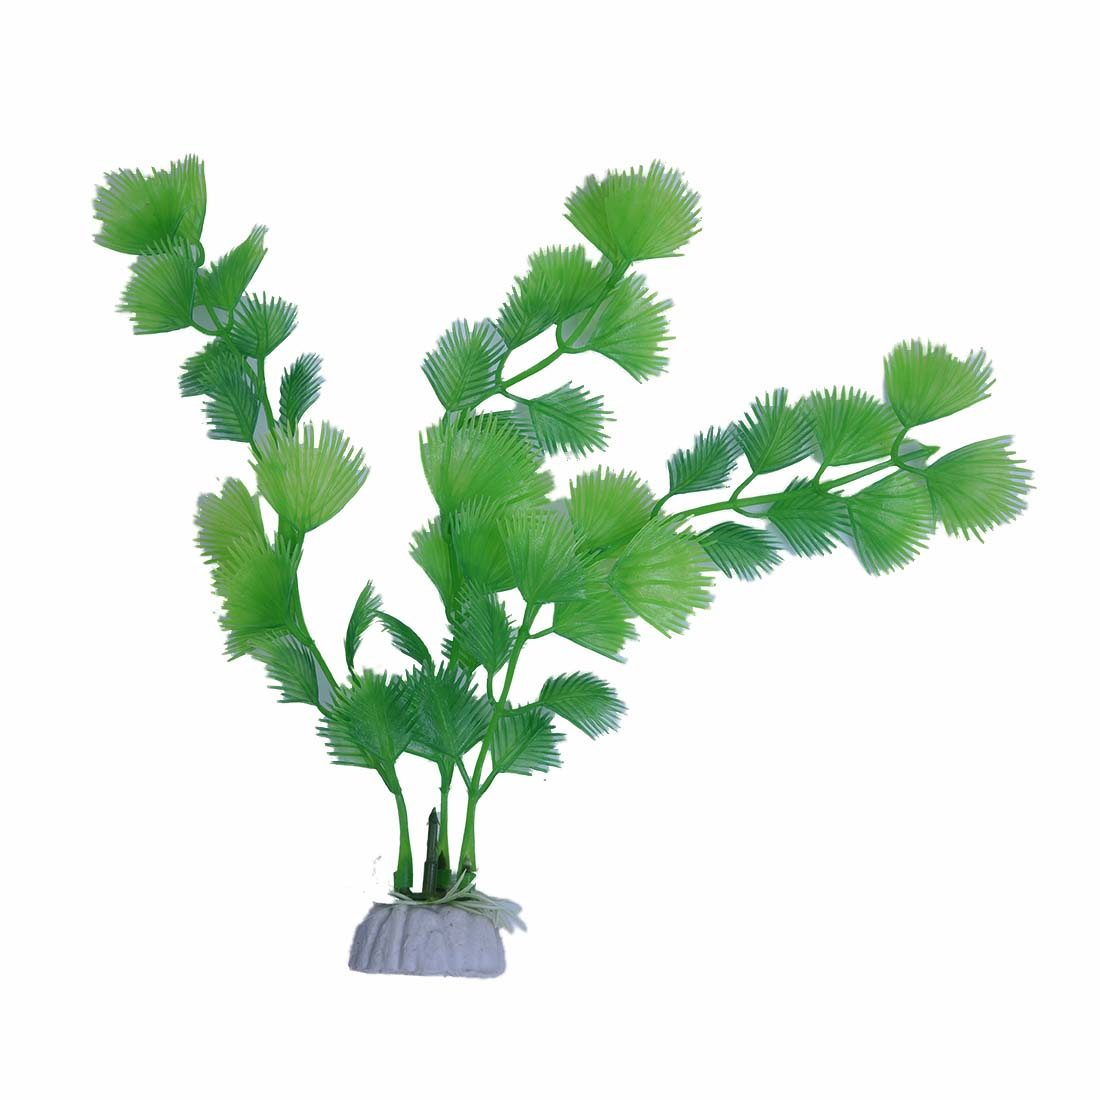 5x plante artificielle vert en plastique decoration aquarium d5p7 ebay. Black Bedroom Furniture Sets. Home Design Ideas